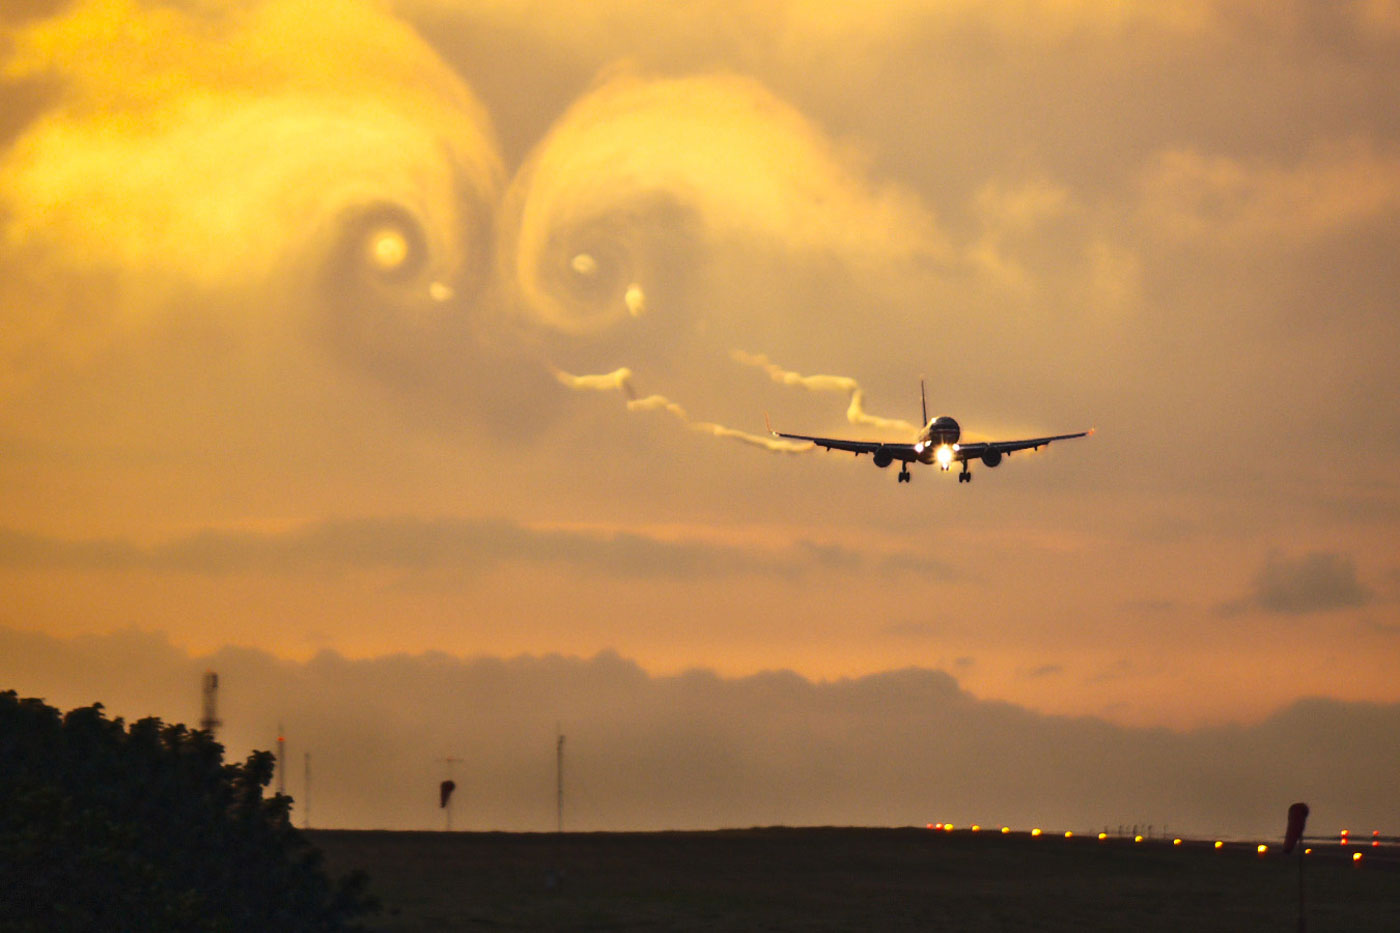 Wake Turbulence - Approaching 757